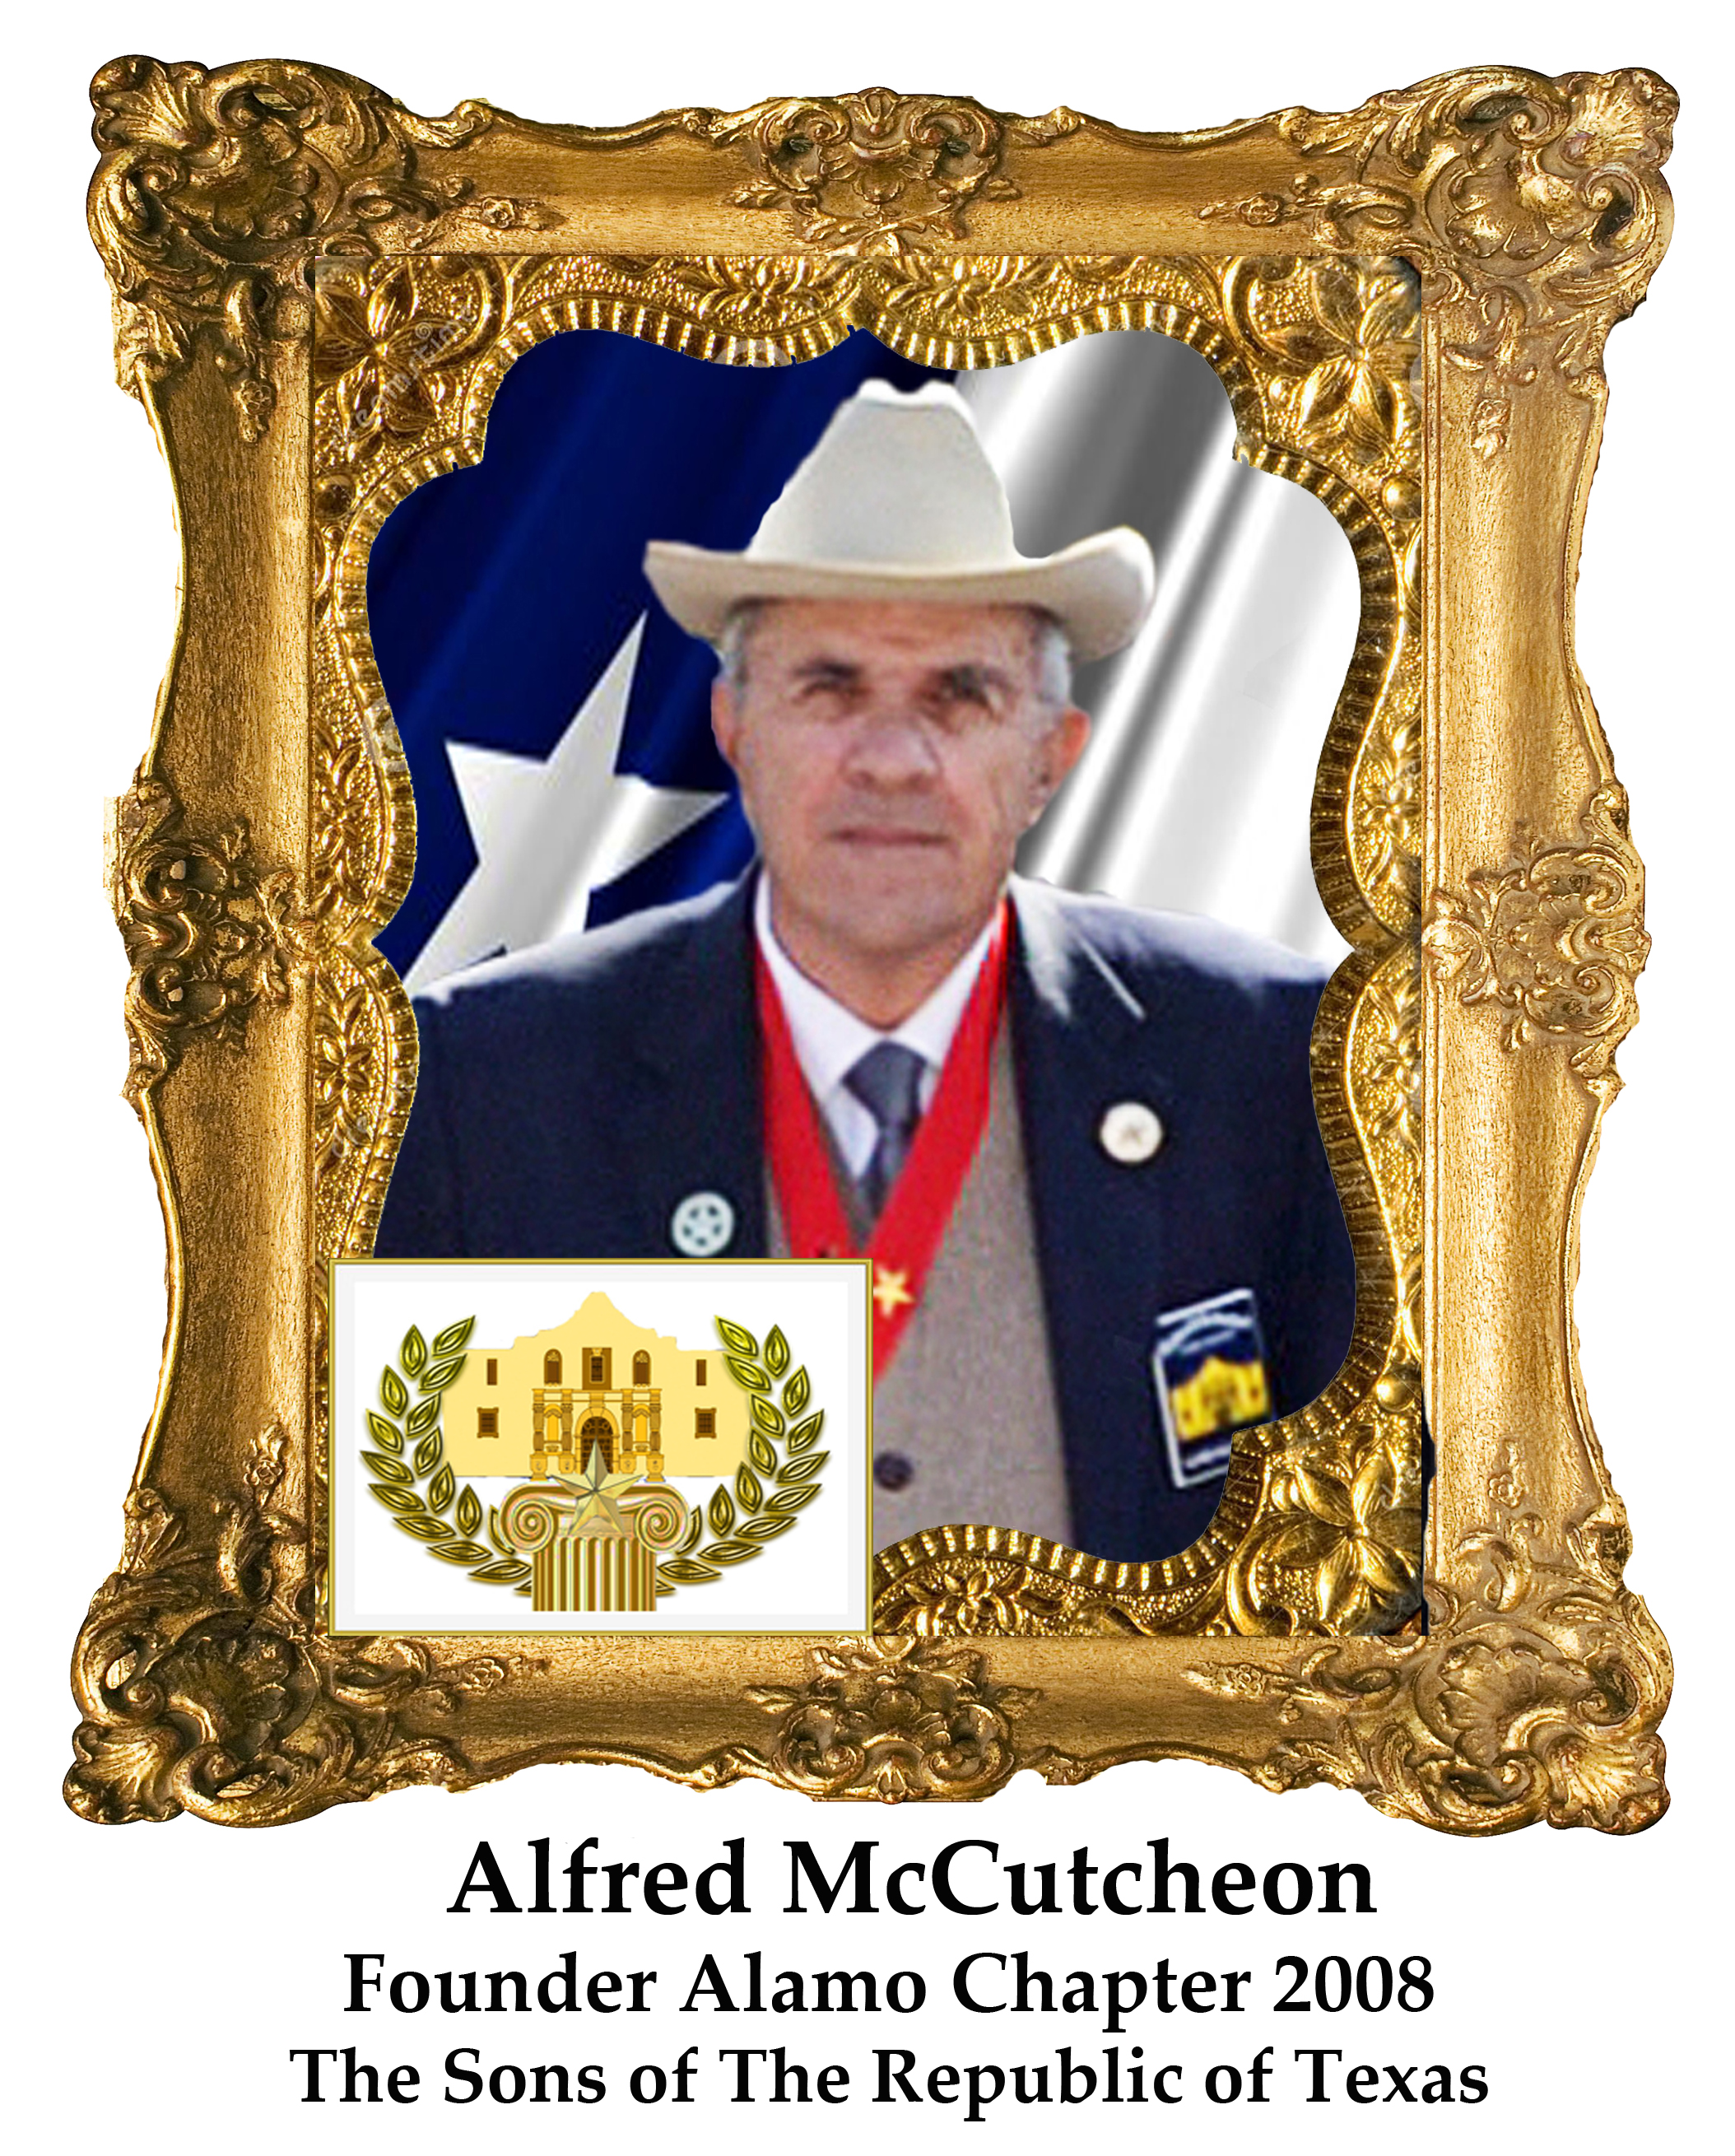 Al McCutcheon.jpg